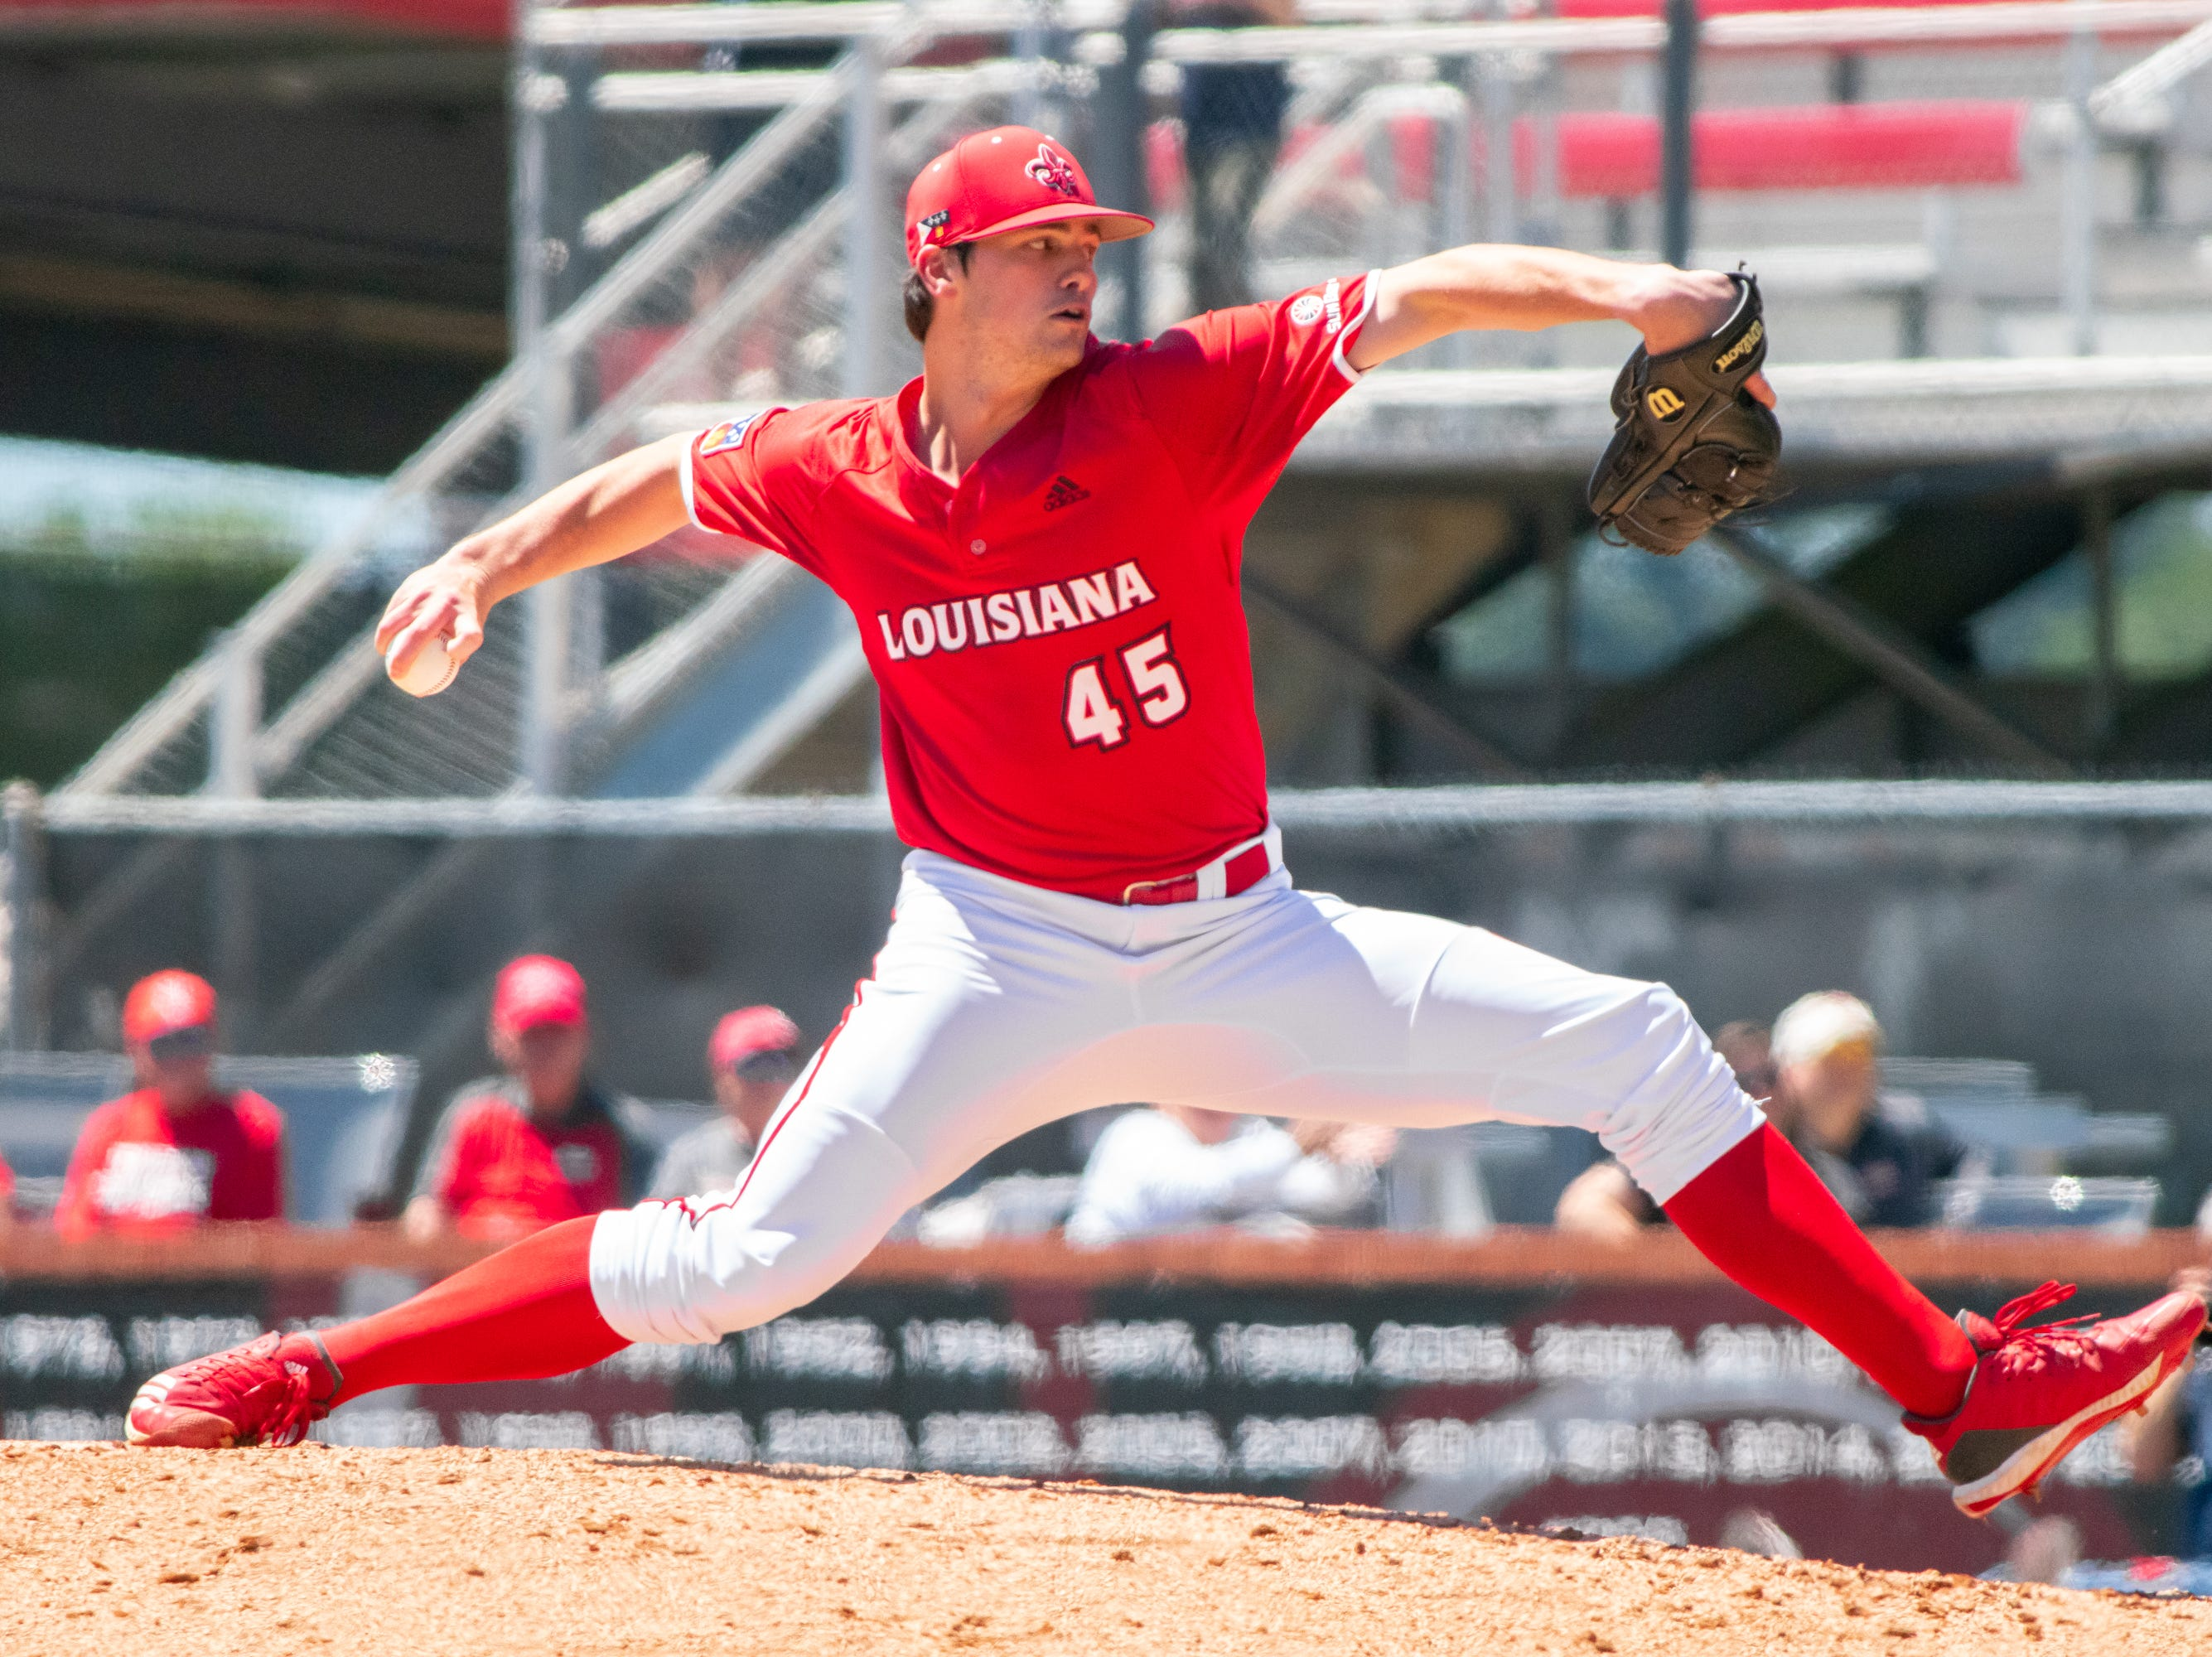 """UL's pitcher Jack Burk throws from the mound as the Ragin' Cajuns take on the South Alabama Jaguars at M.L. """"Tigue"""" Moore Field on Sunday, April 14, 2019."""